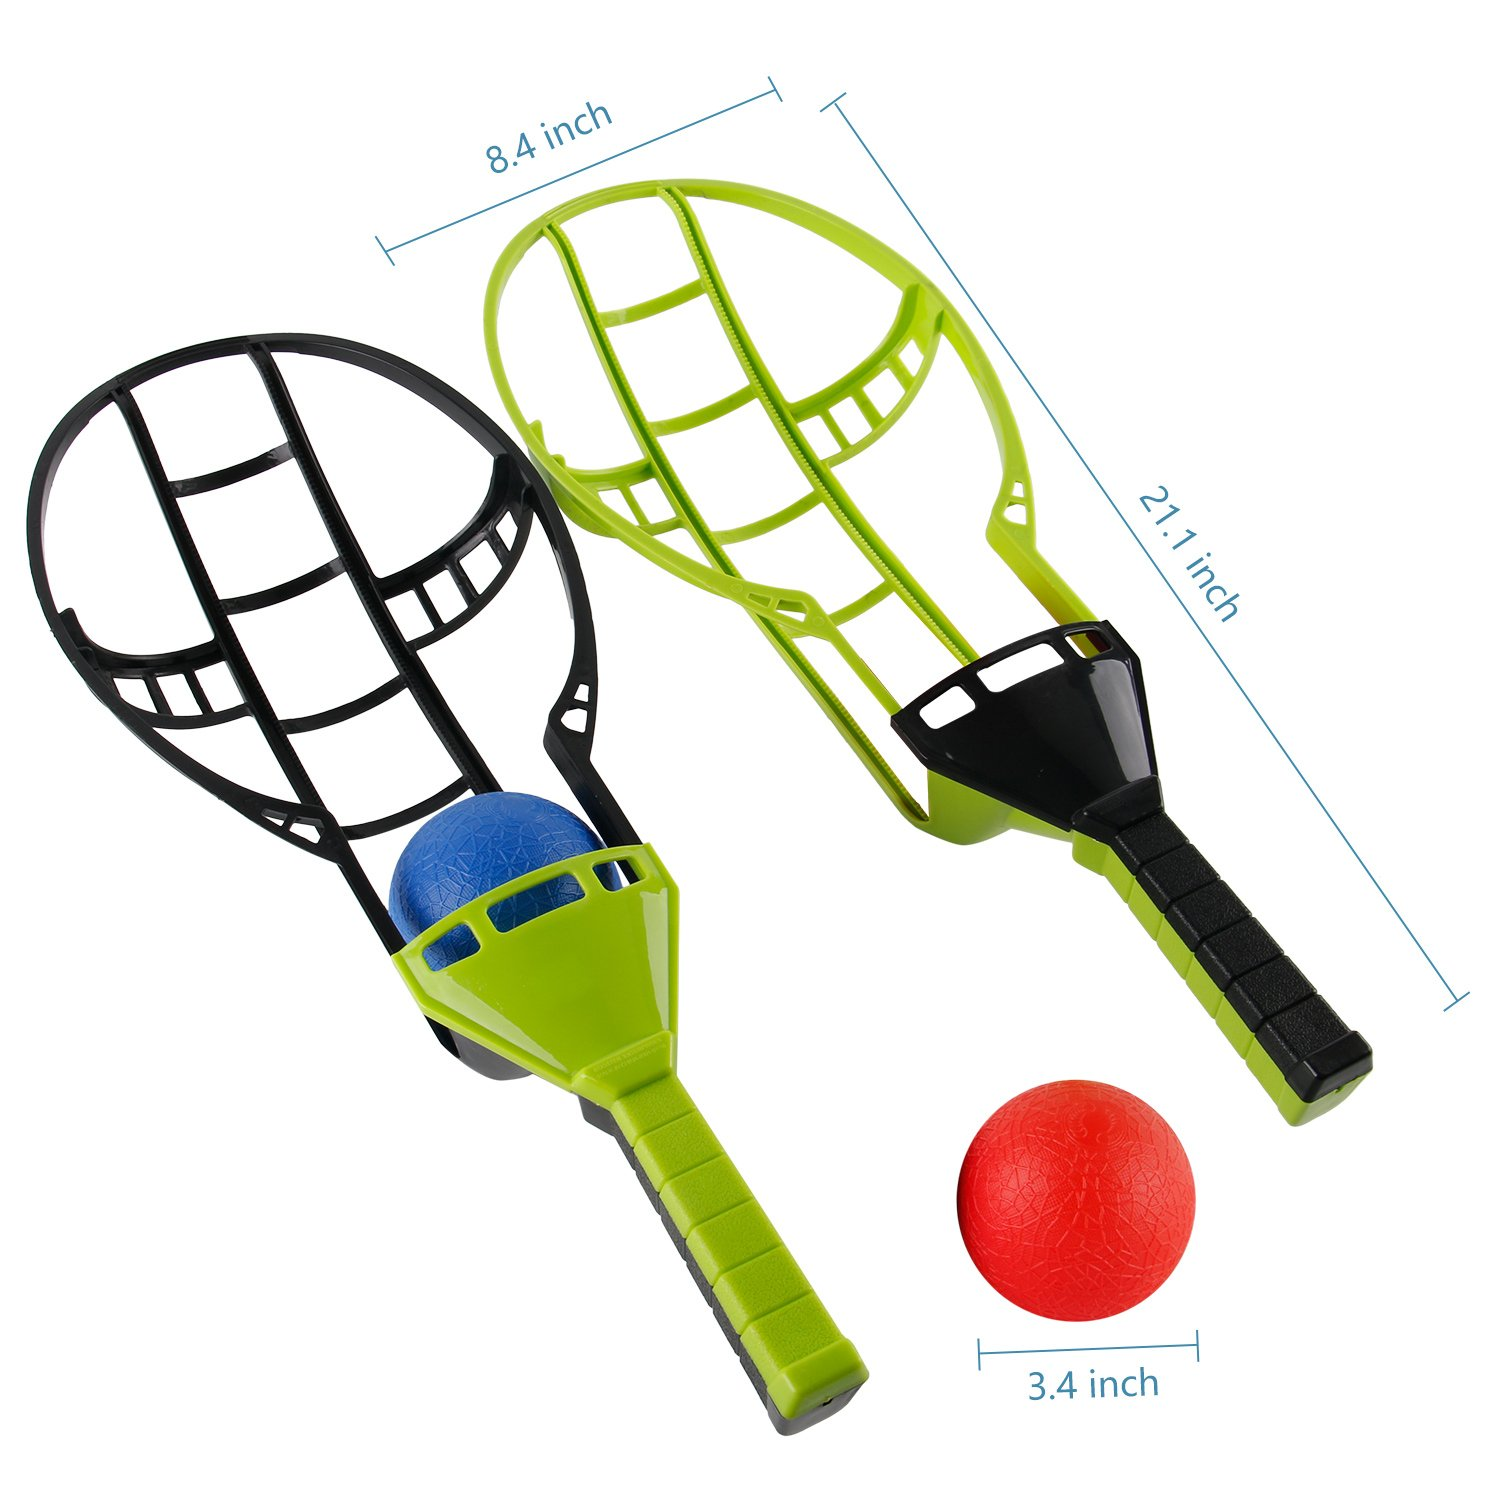 Liberty Imports Trackball Sport Trac Ball Lacrosse Racket Game